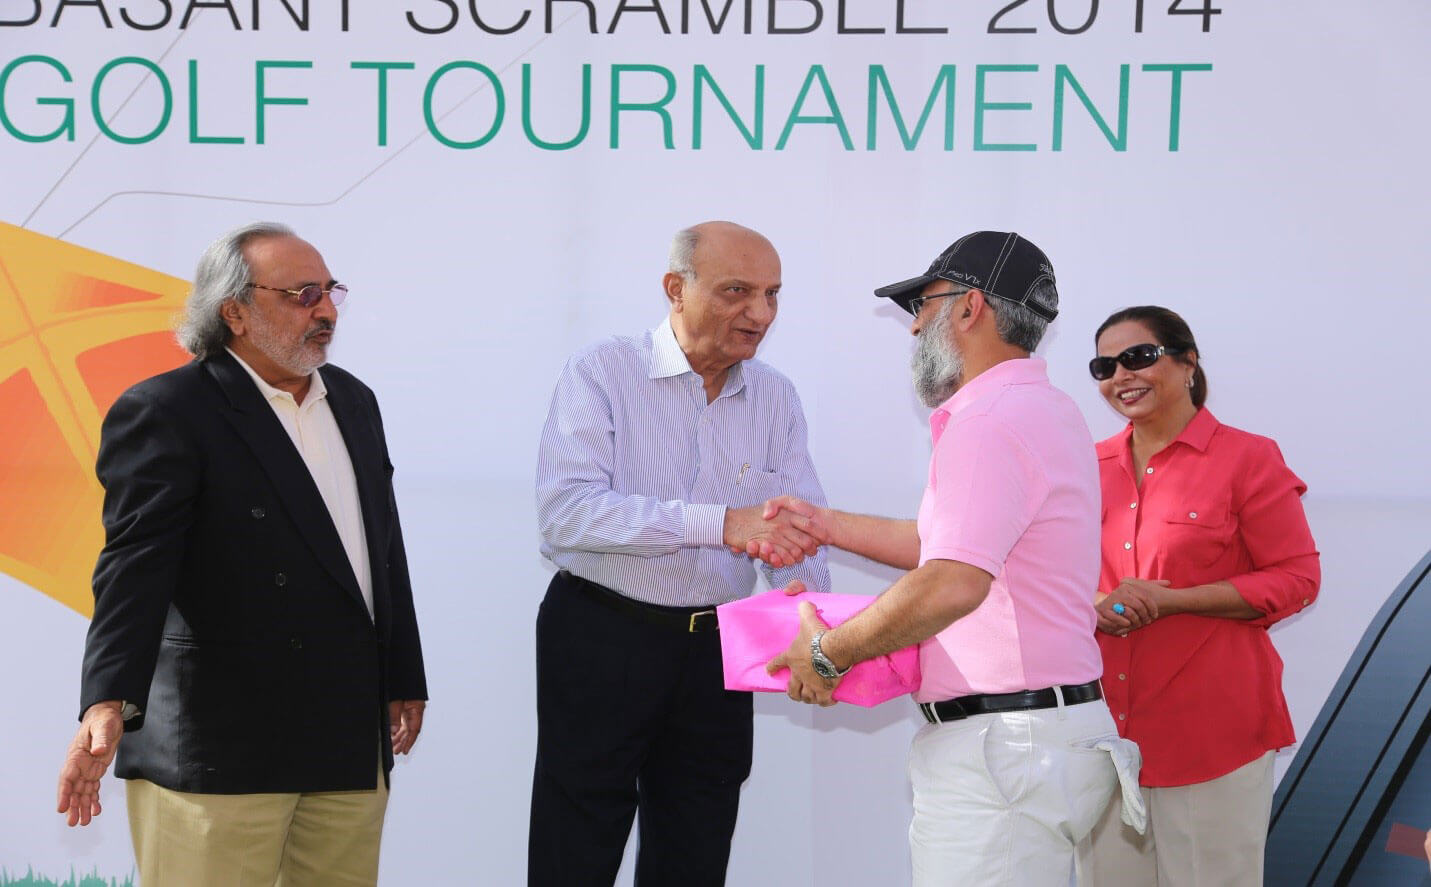 KGC Basant Scramble 2014 Golf Tournament - 2